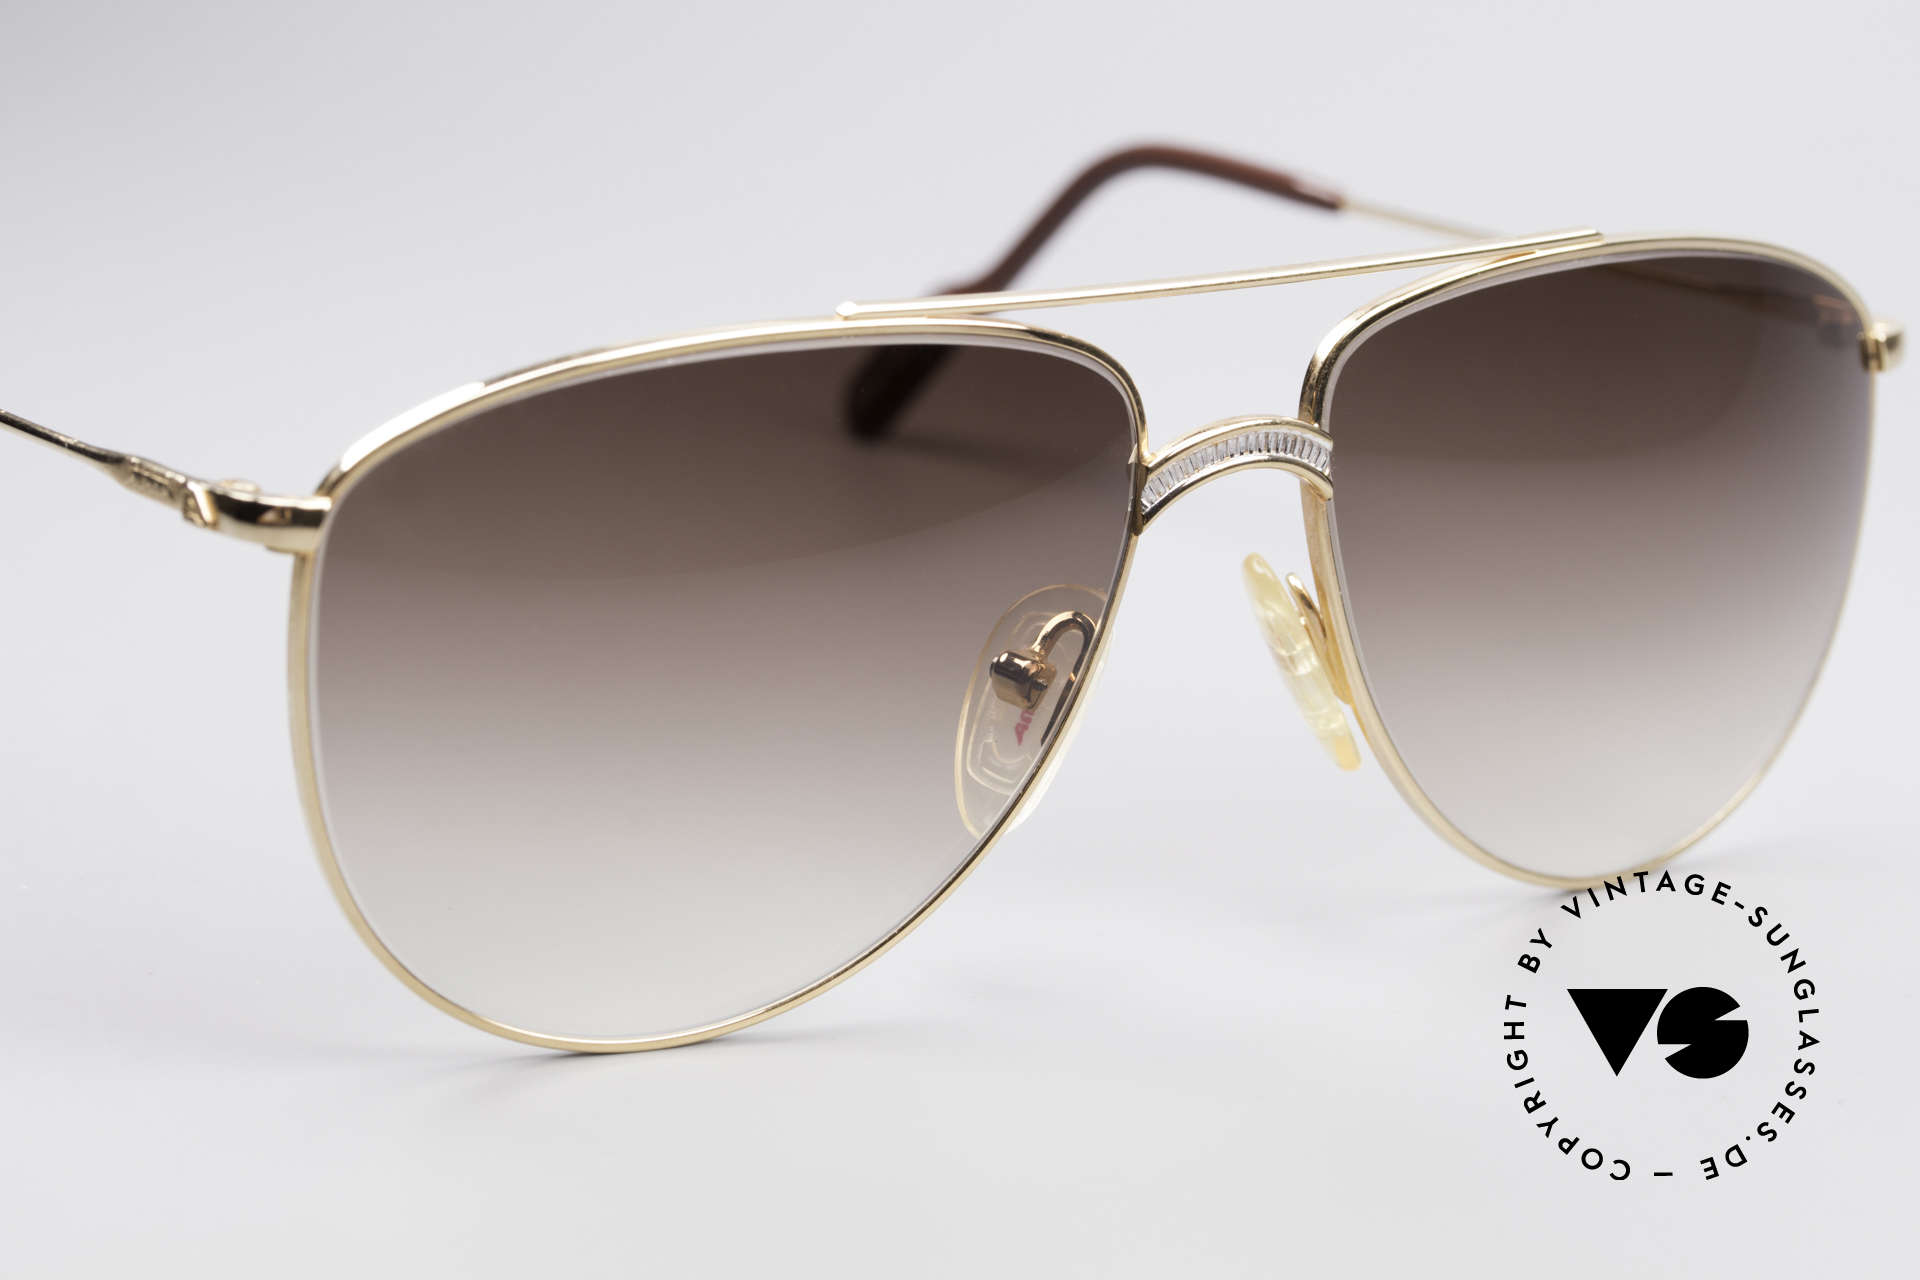 Alpina FM81 Vintage Classic 80's Shades, NO RETRO shades, but an old ORIGINAL + Versace case, Made for Men